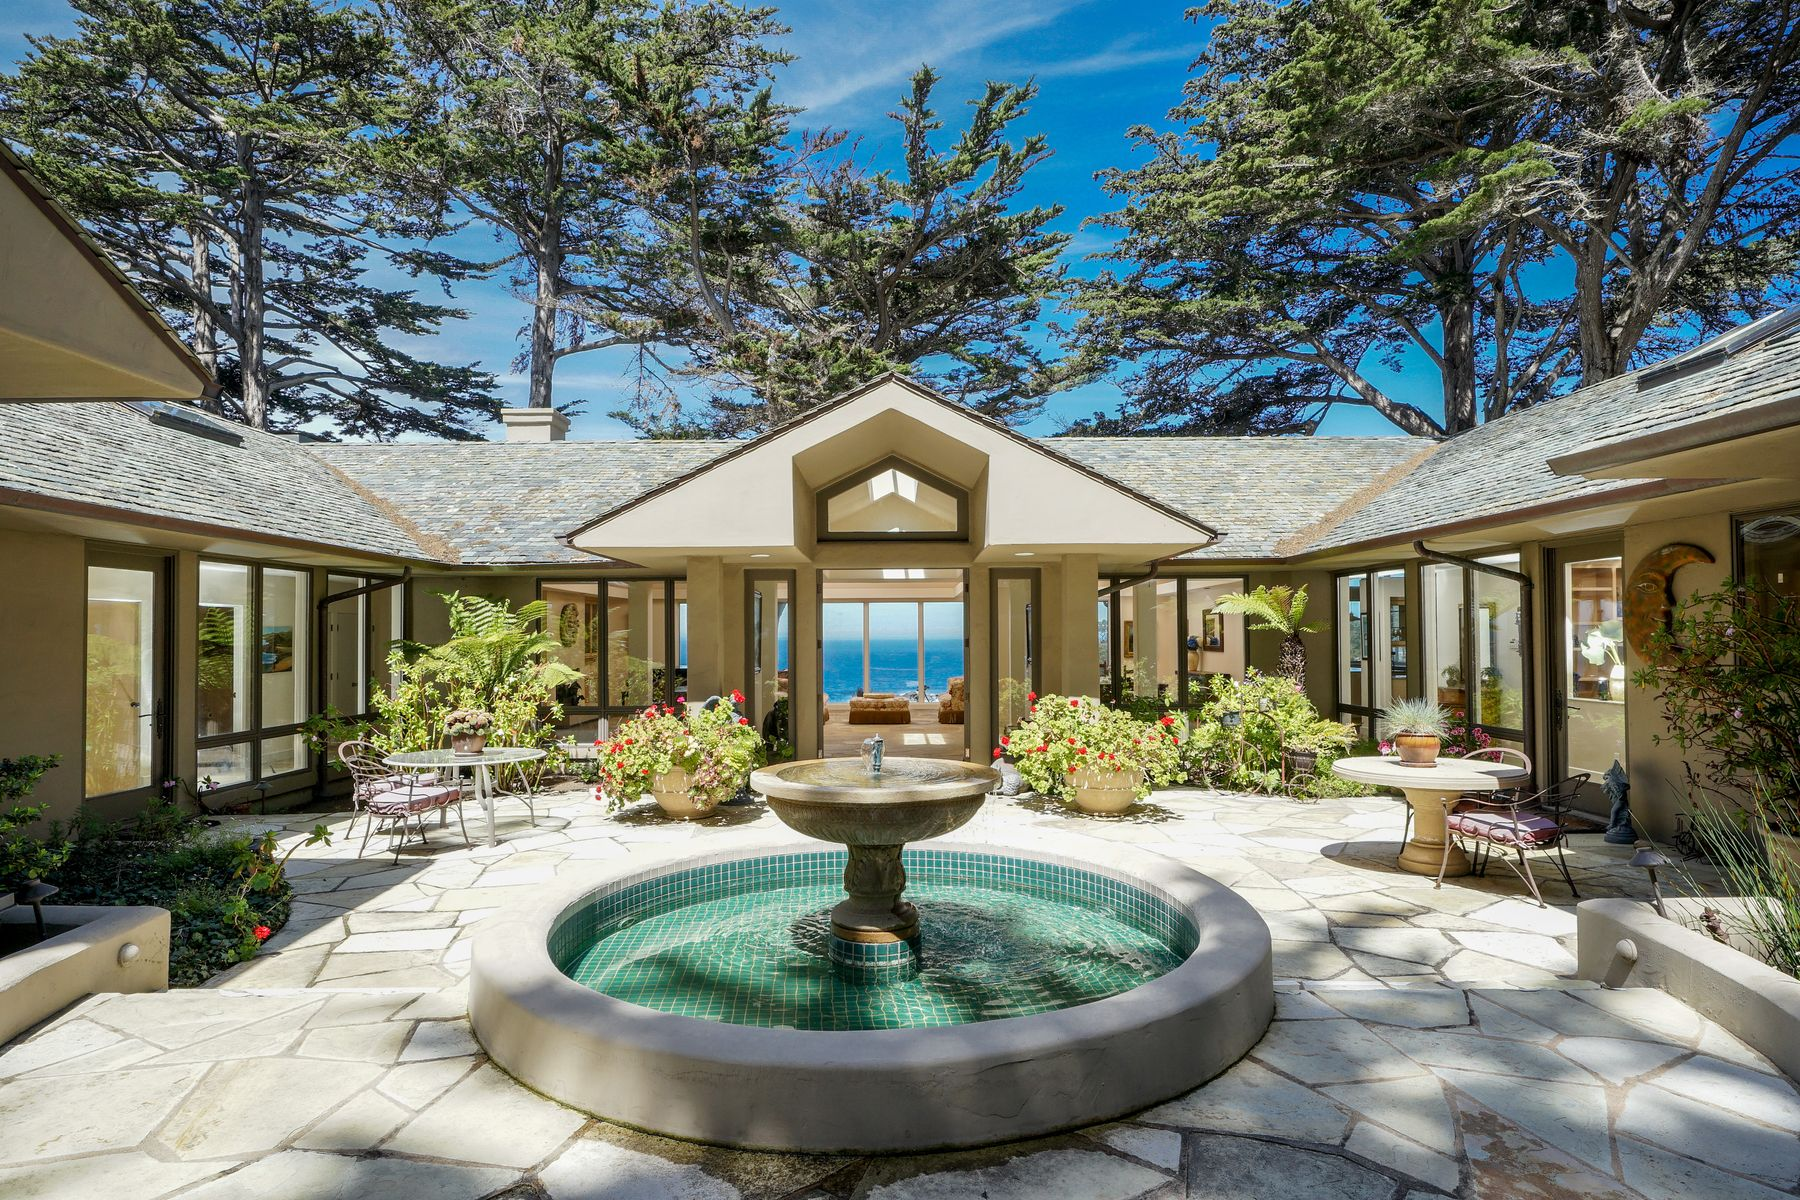 Single Family Homes for Sale at Oceanfront Overlooking Wildcat Cove 29798 Highway 1 Carmel Highlands, California 93923 United States